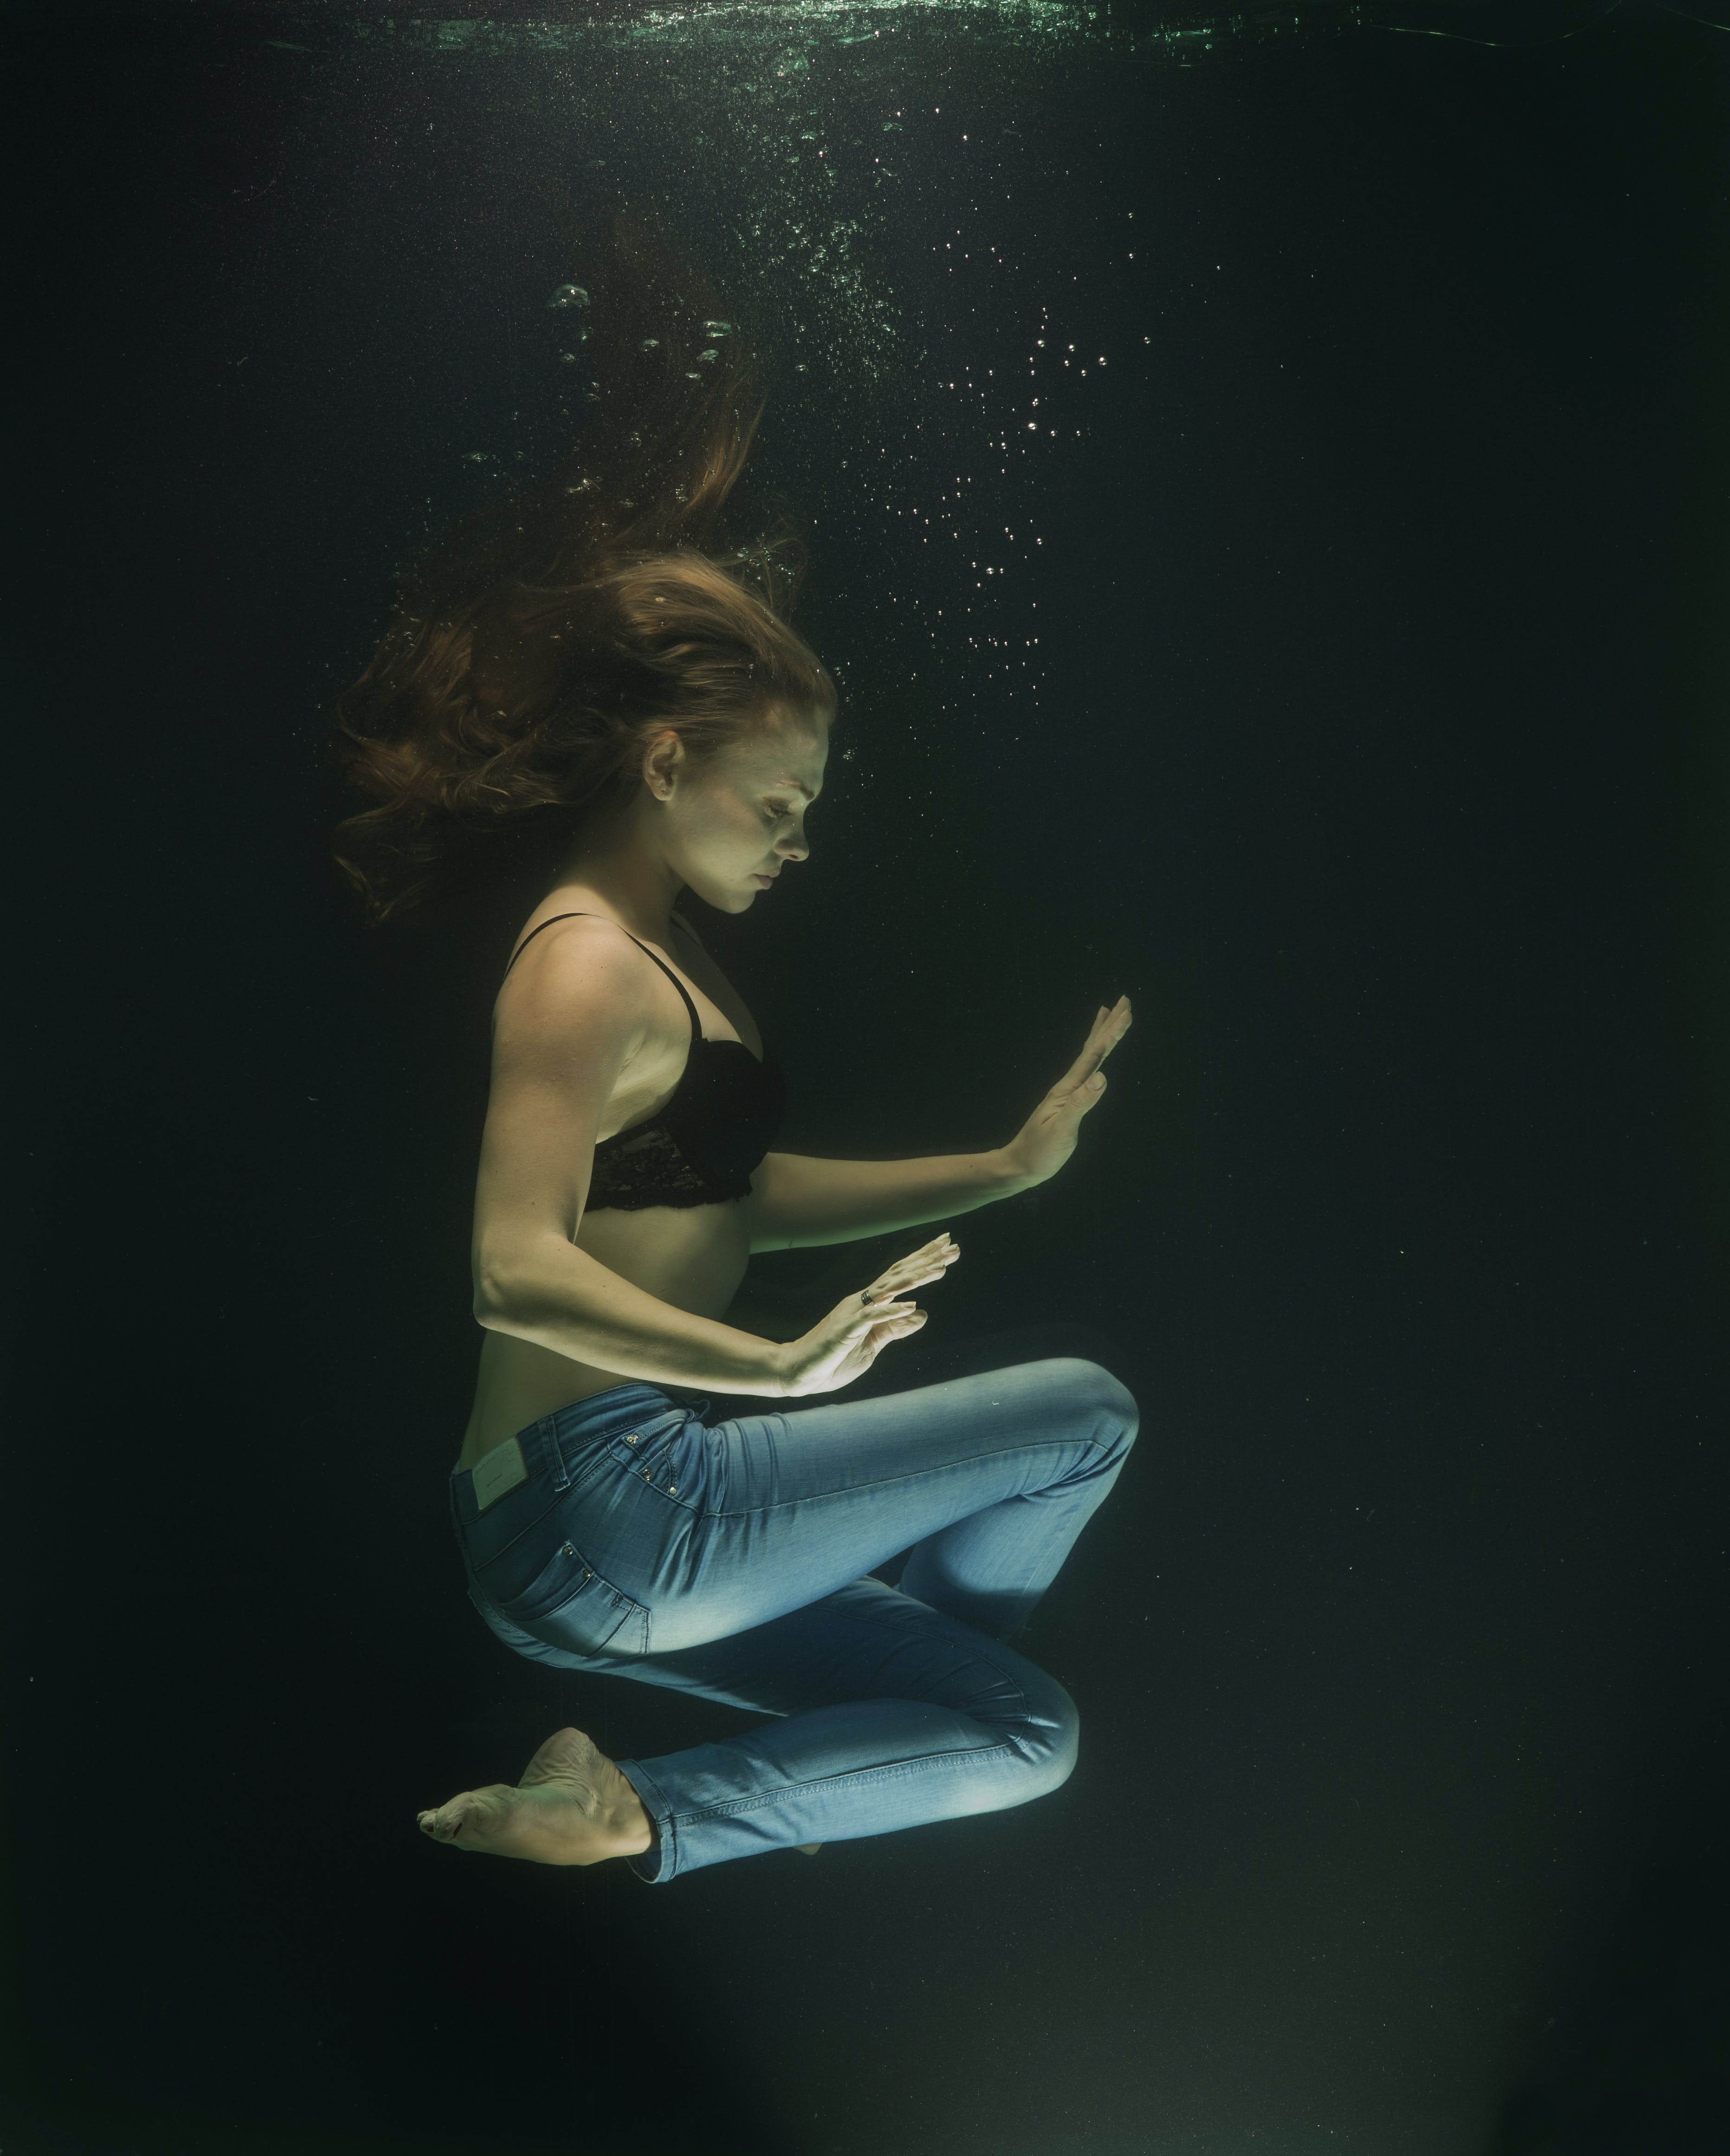 Underwater Photography of Woman Wearing Blue Jeans and Black Bra